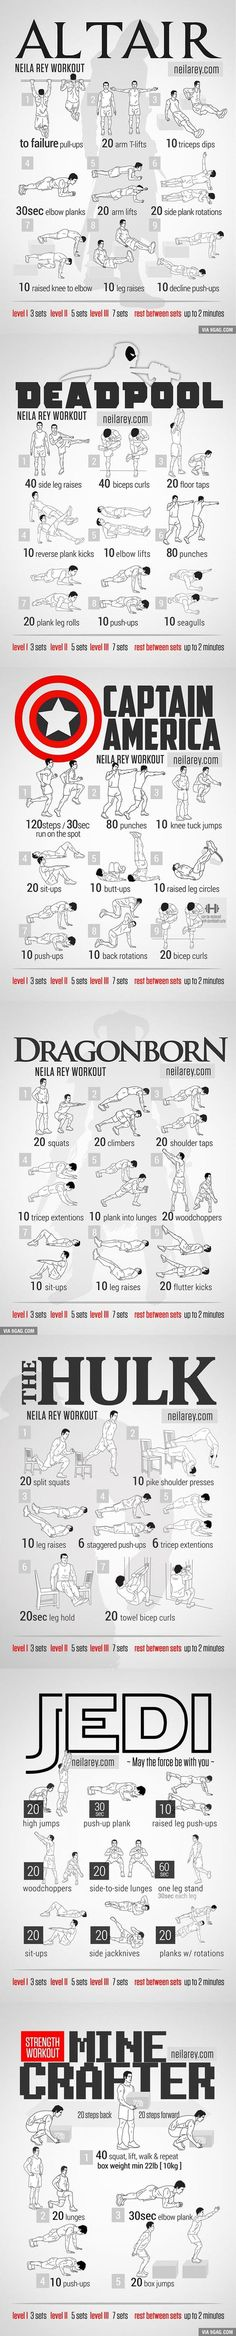 Some proper workout schemes